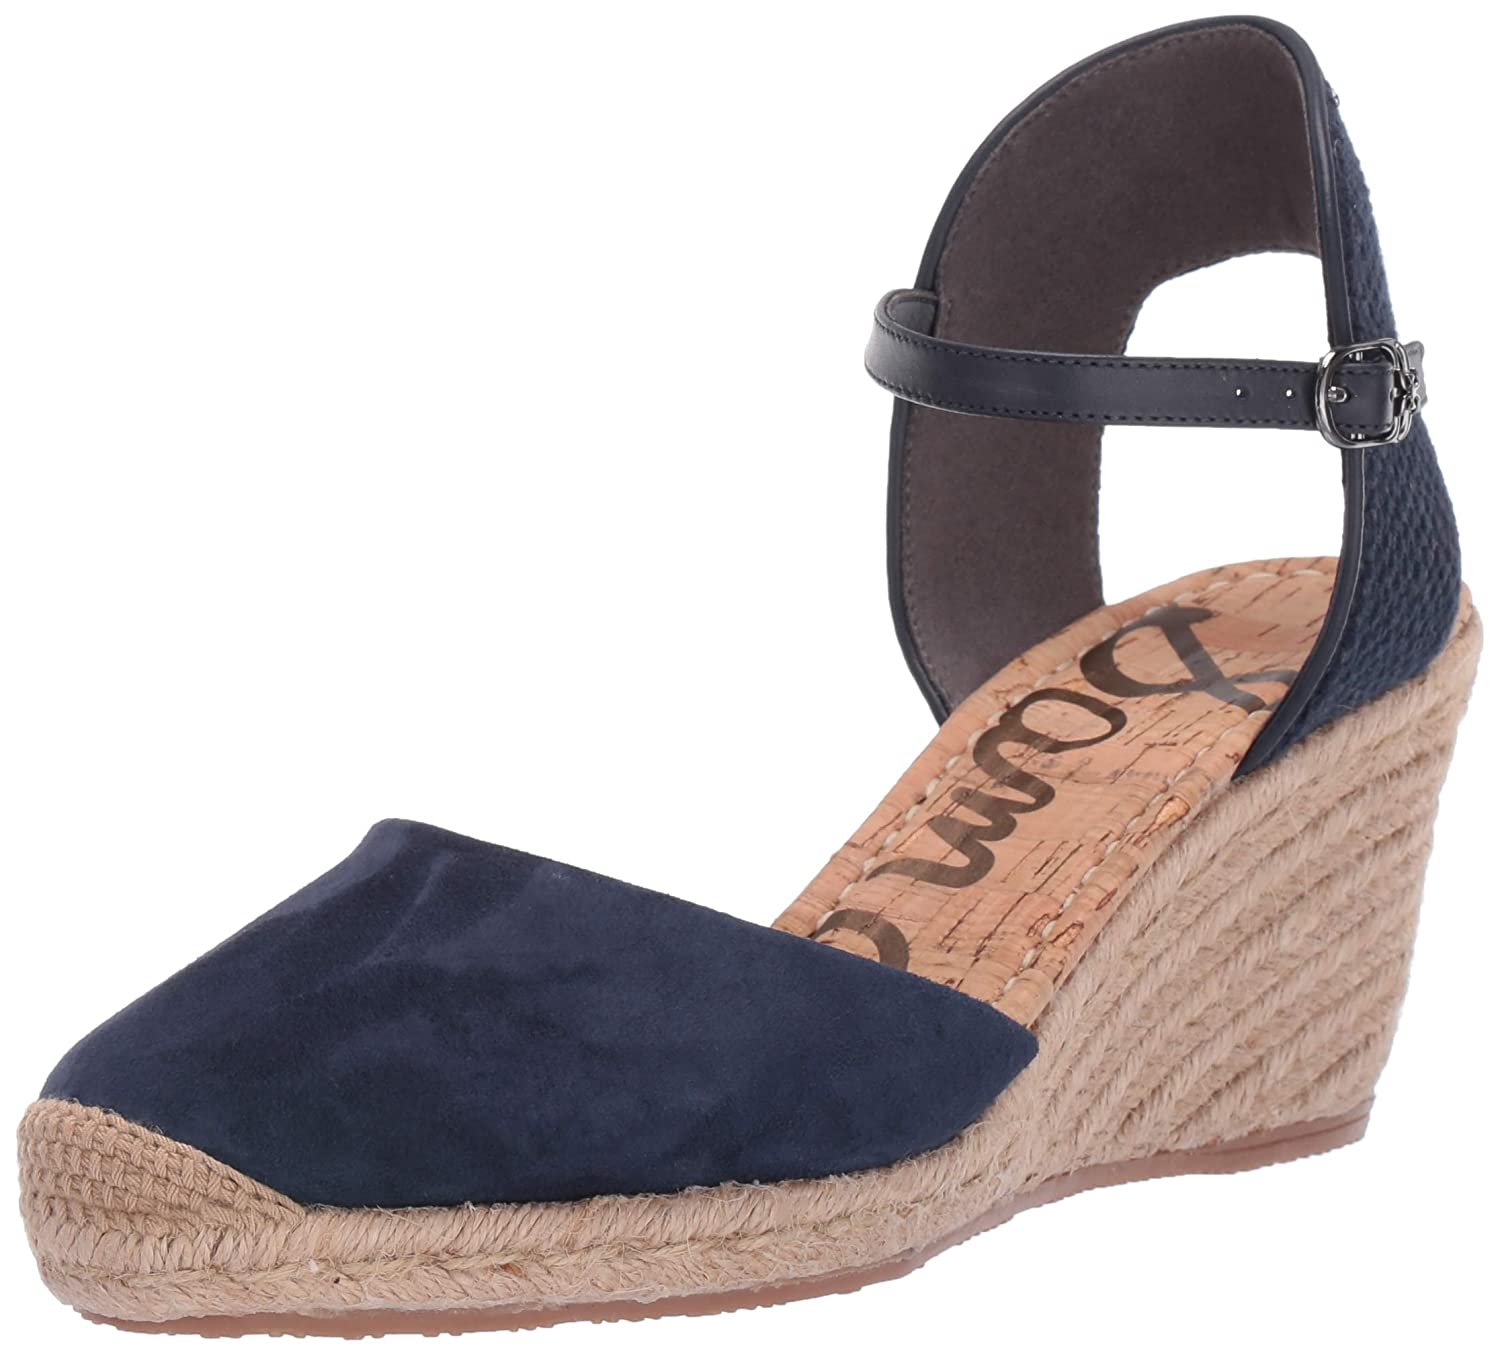 Baltic Navy Sam Edelman Womens Payton Pump